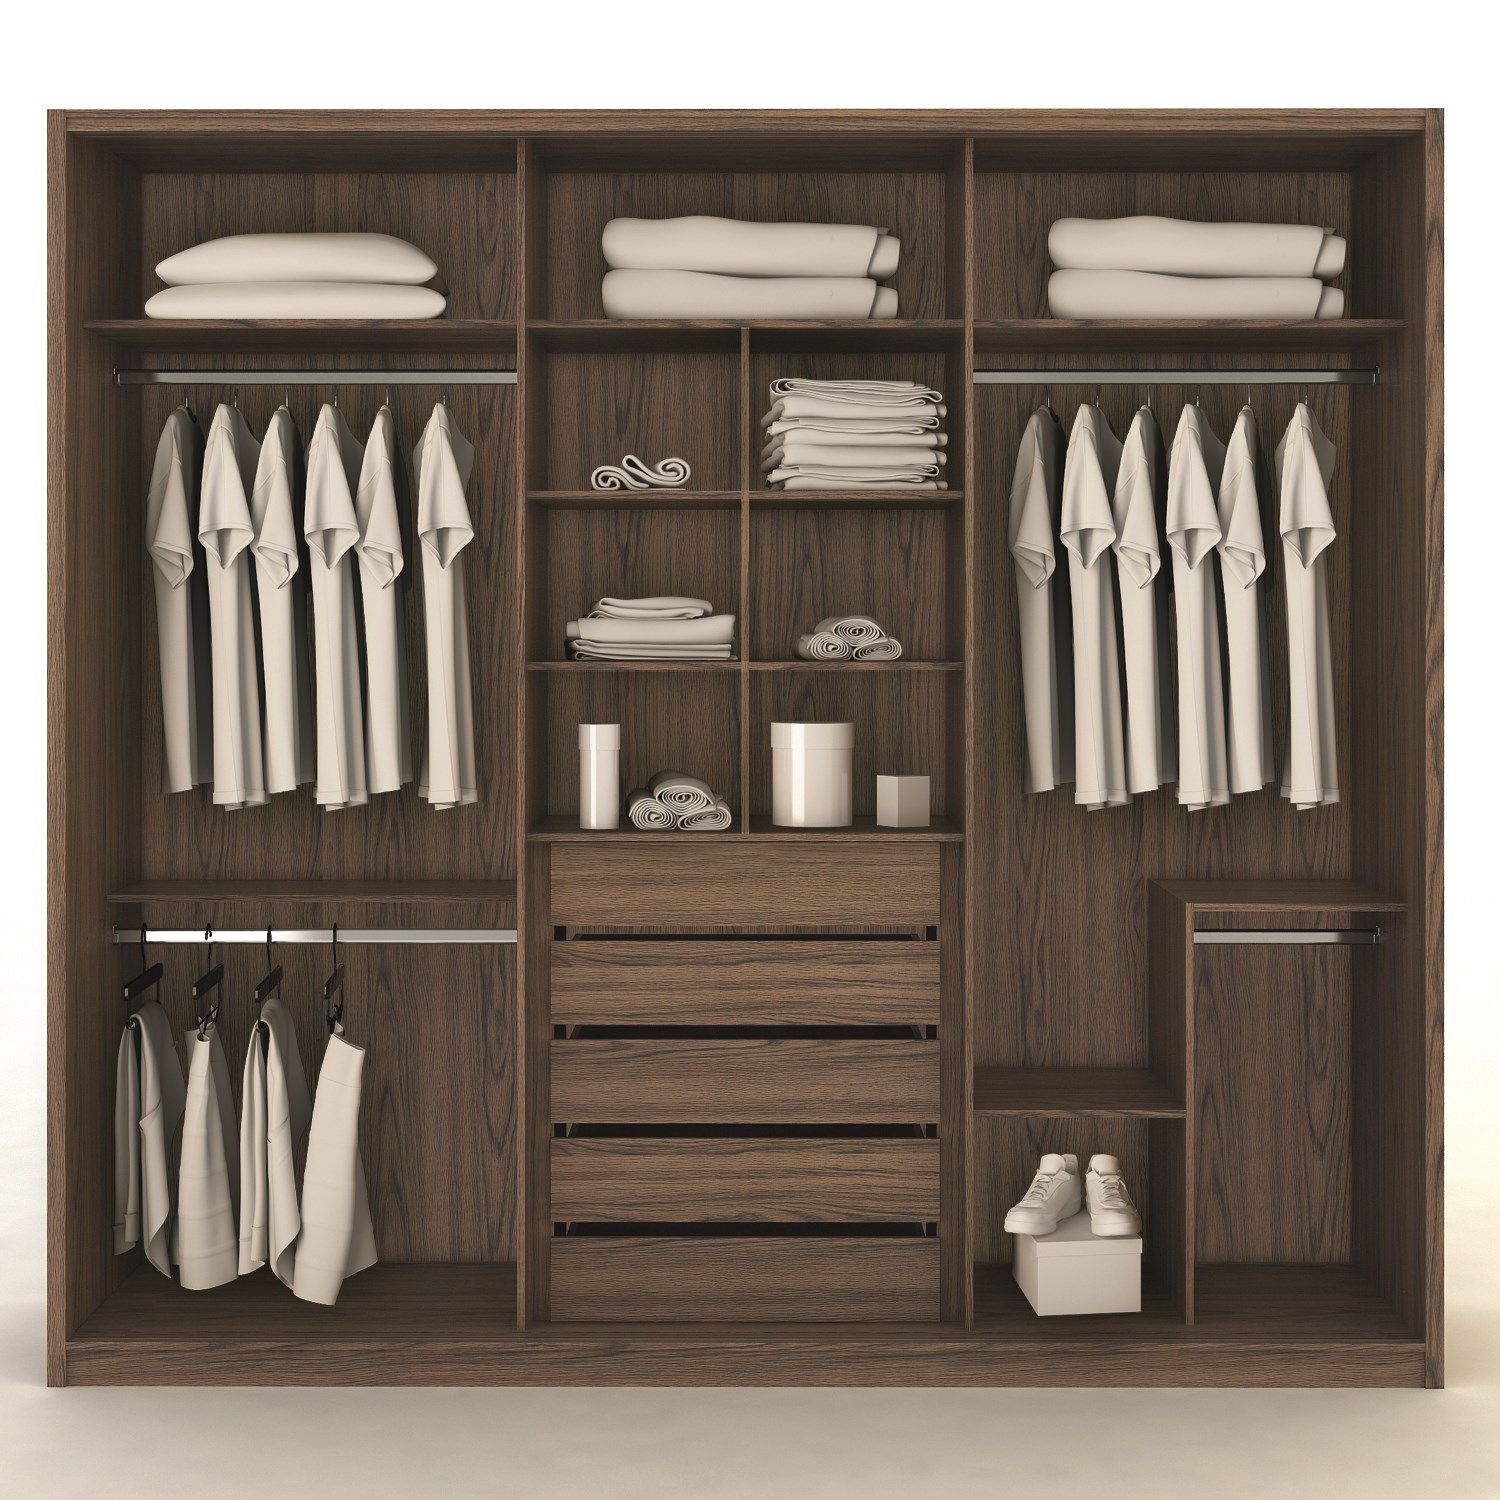 enlarge comforter comfort to doors onyx mhc drawers modern product nature mdf white wardrobe the click soho manhattan b